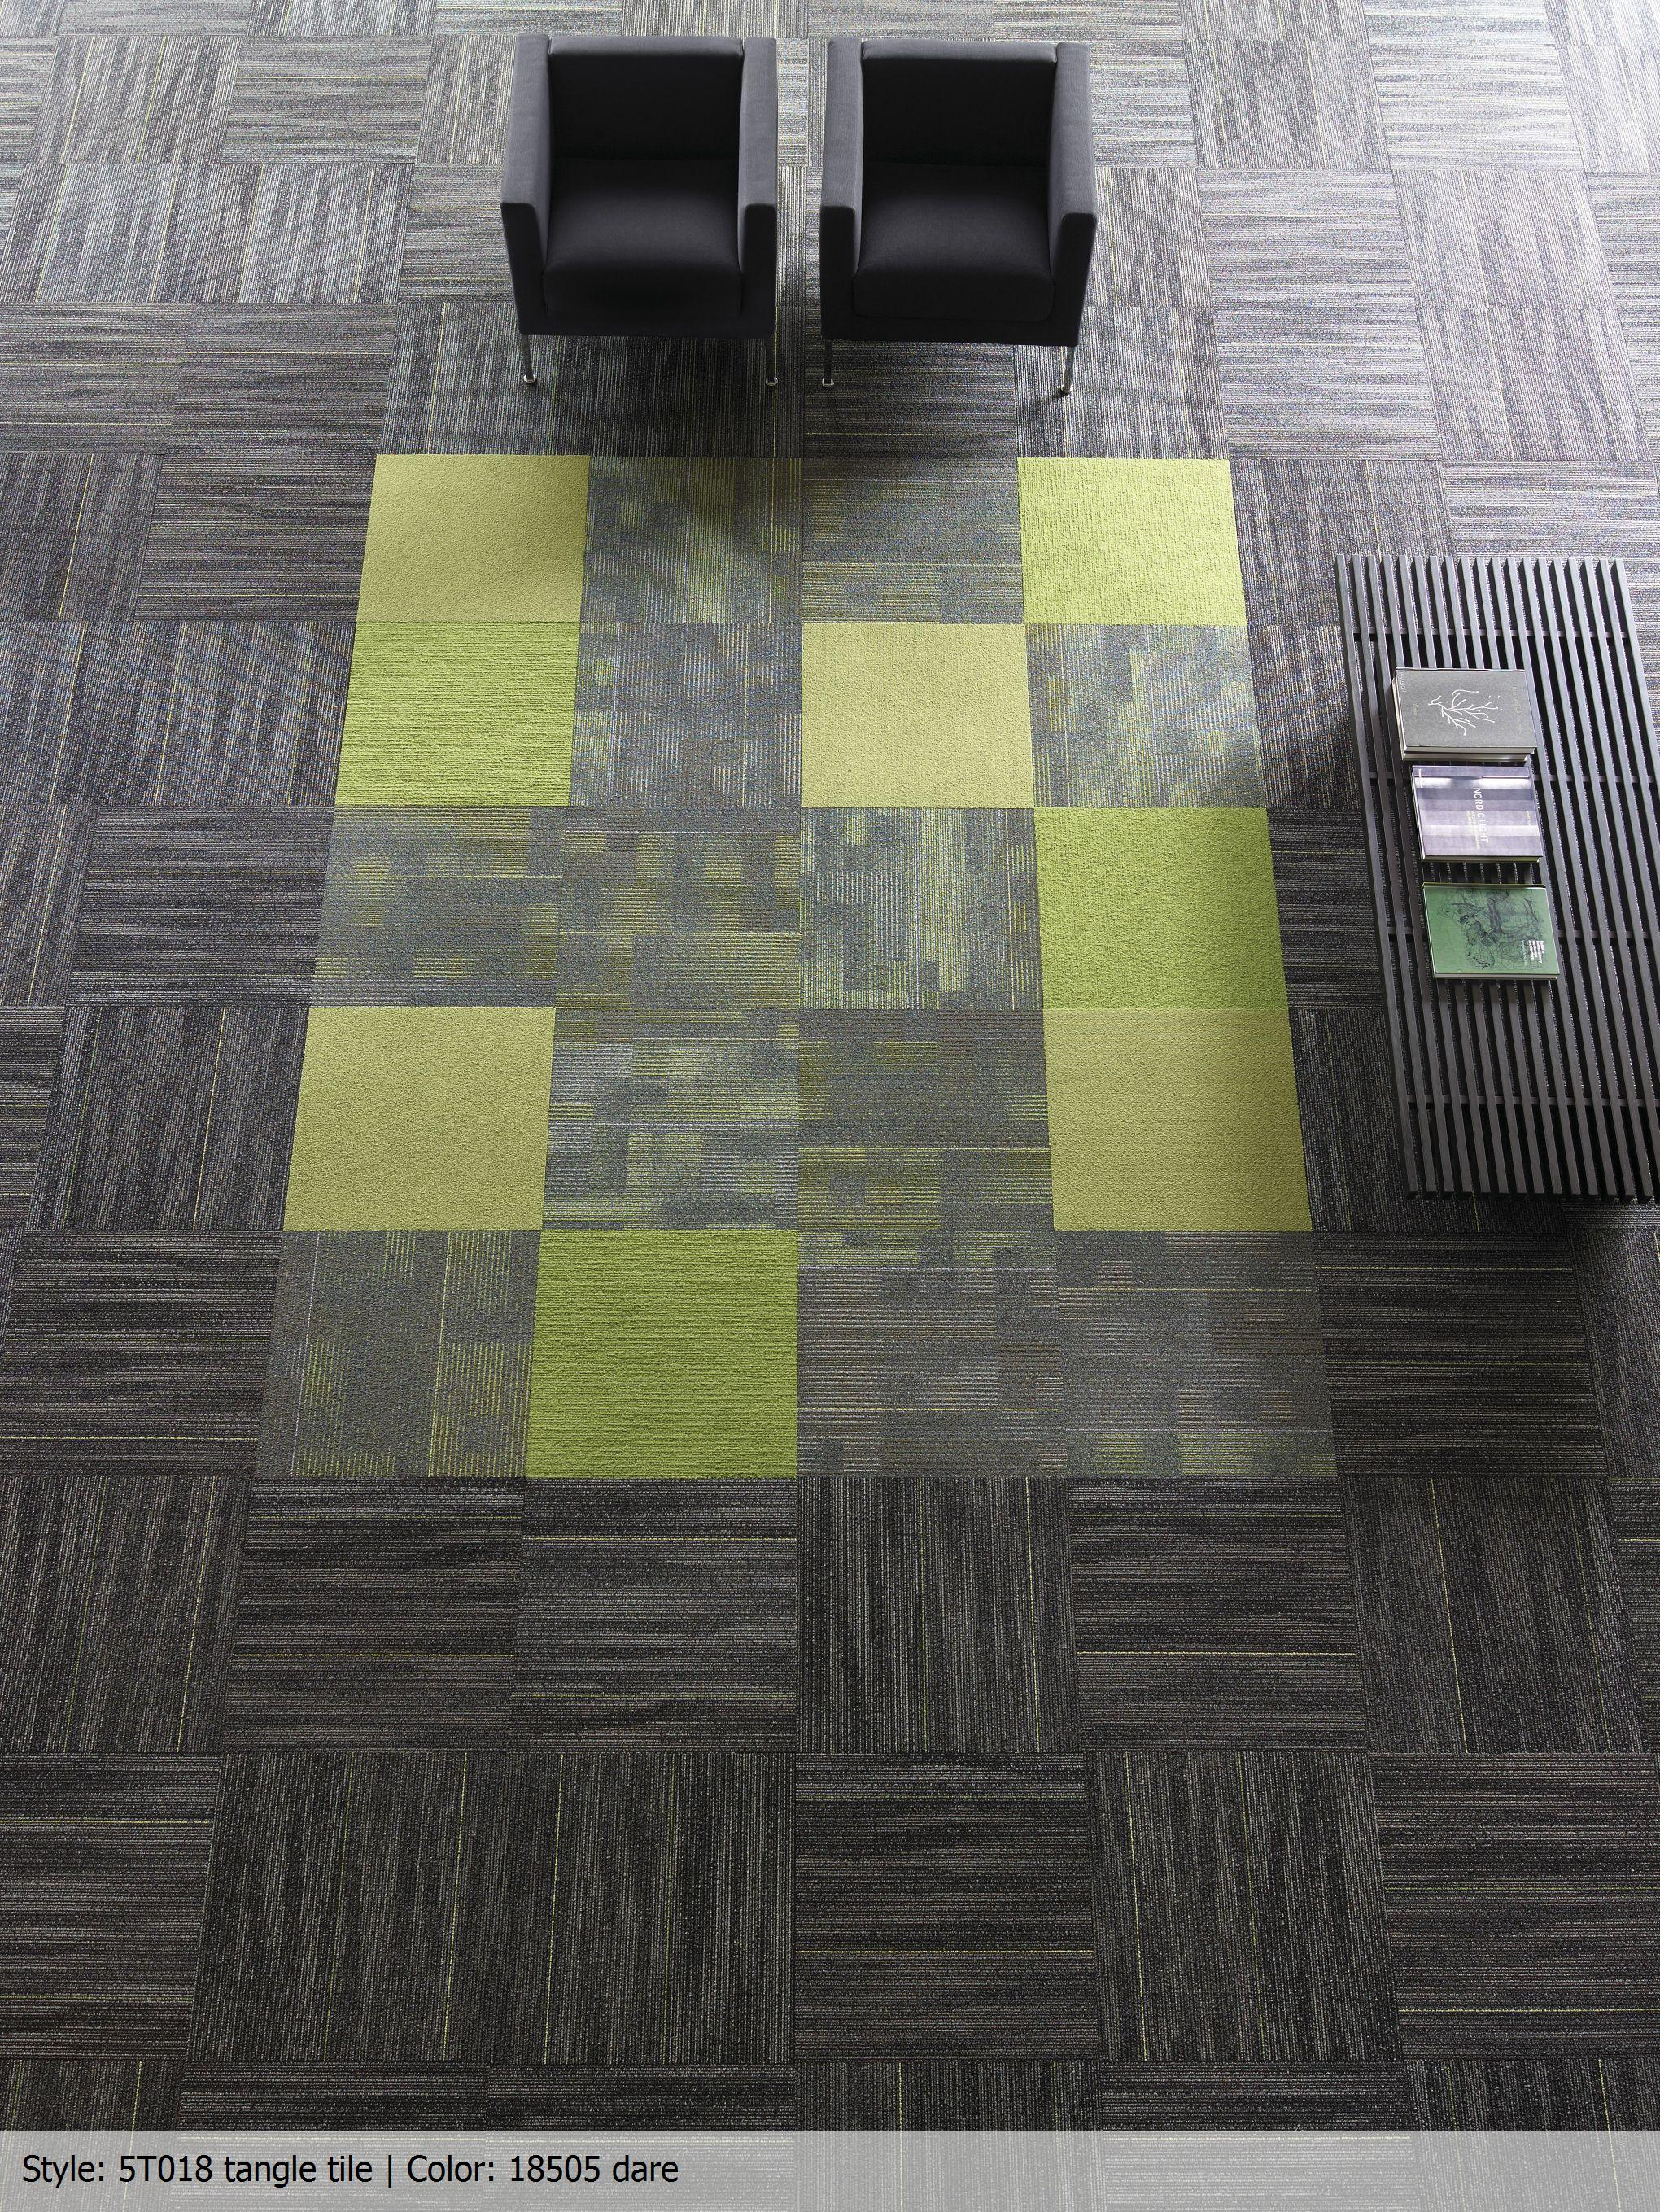 carpet tile installation patterns. Shaw Tangle Carpet Tile Installation Patterns